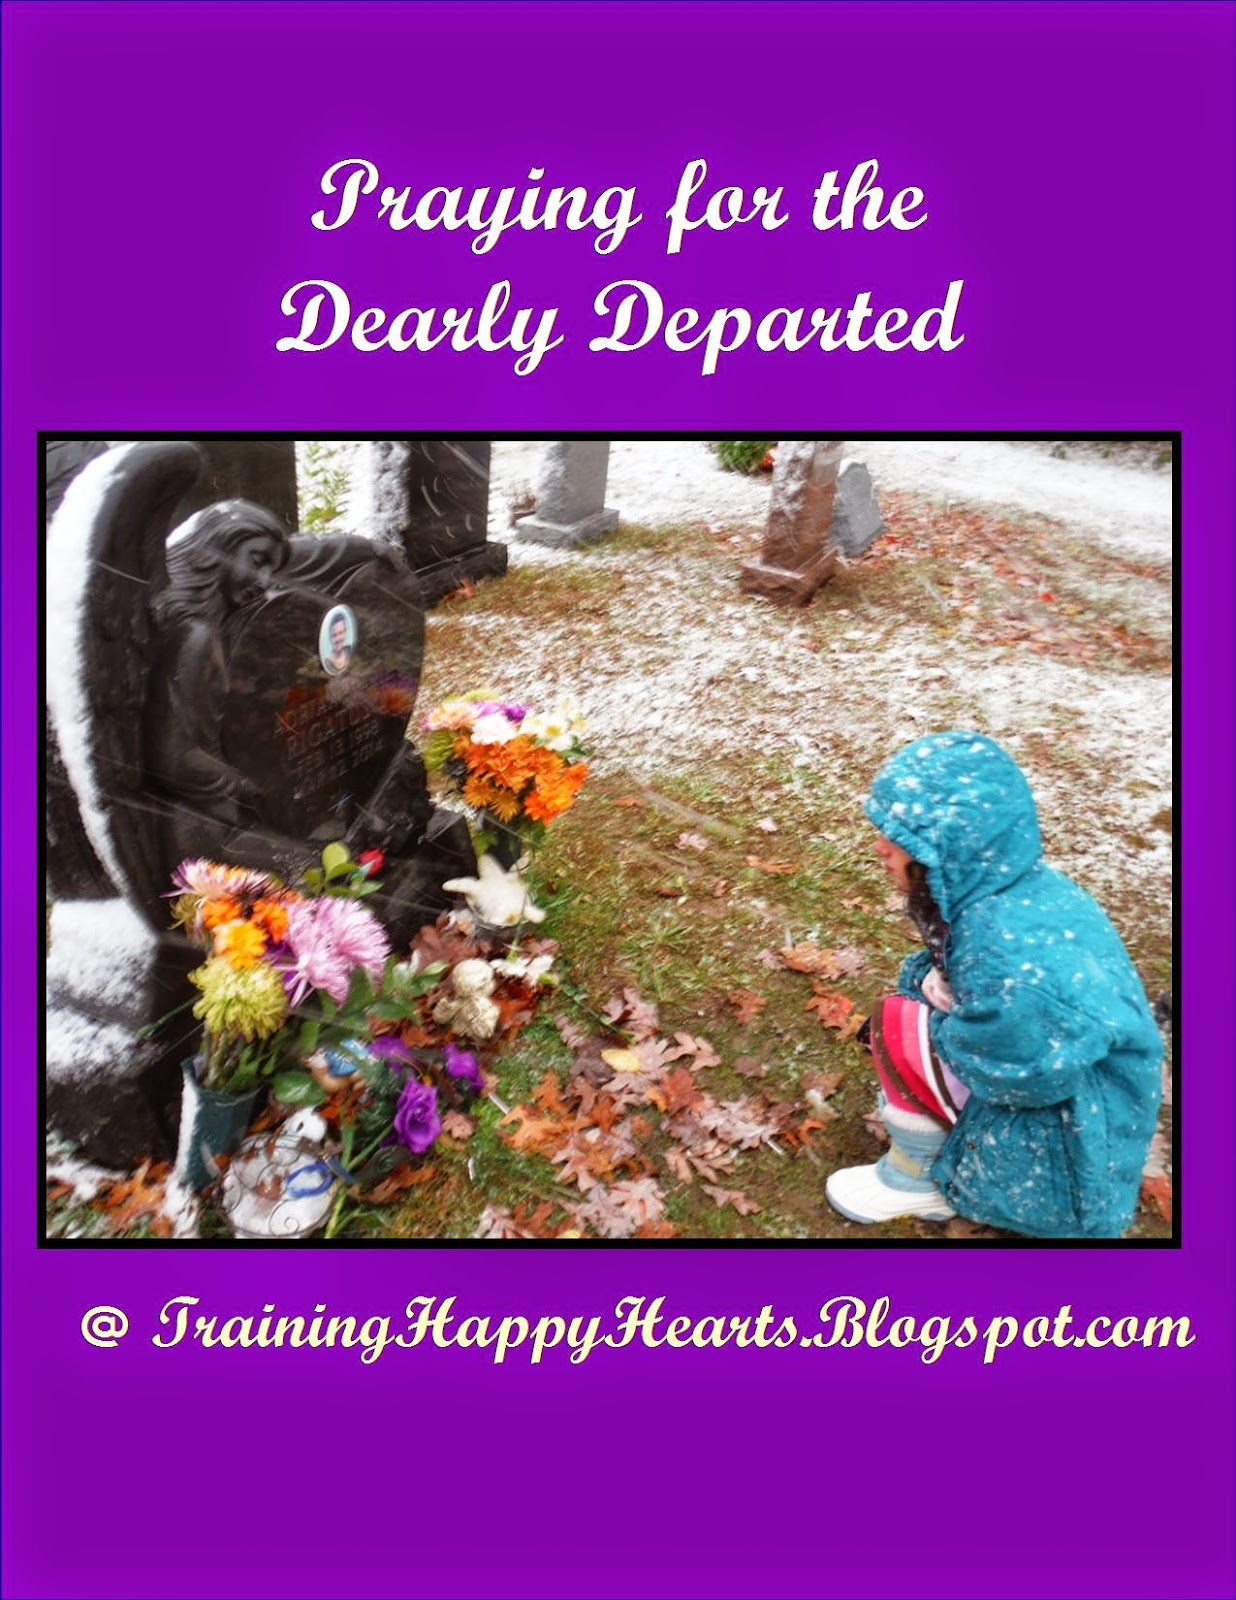 http://traininghappyhearts.blogspot.com/2014/11/please-join-us-in-praying-for-dearly.html